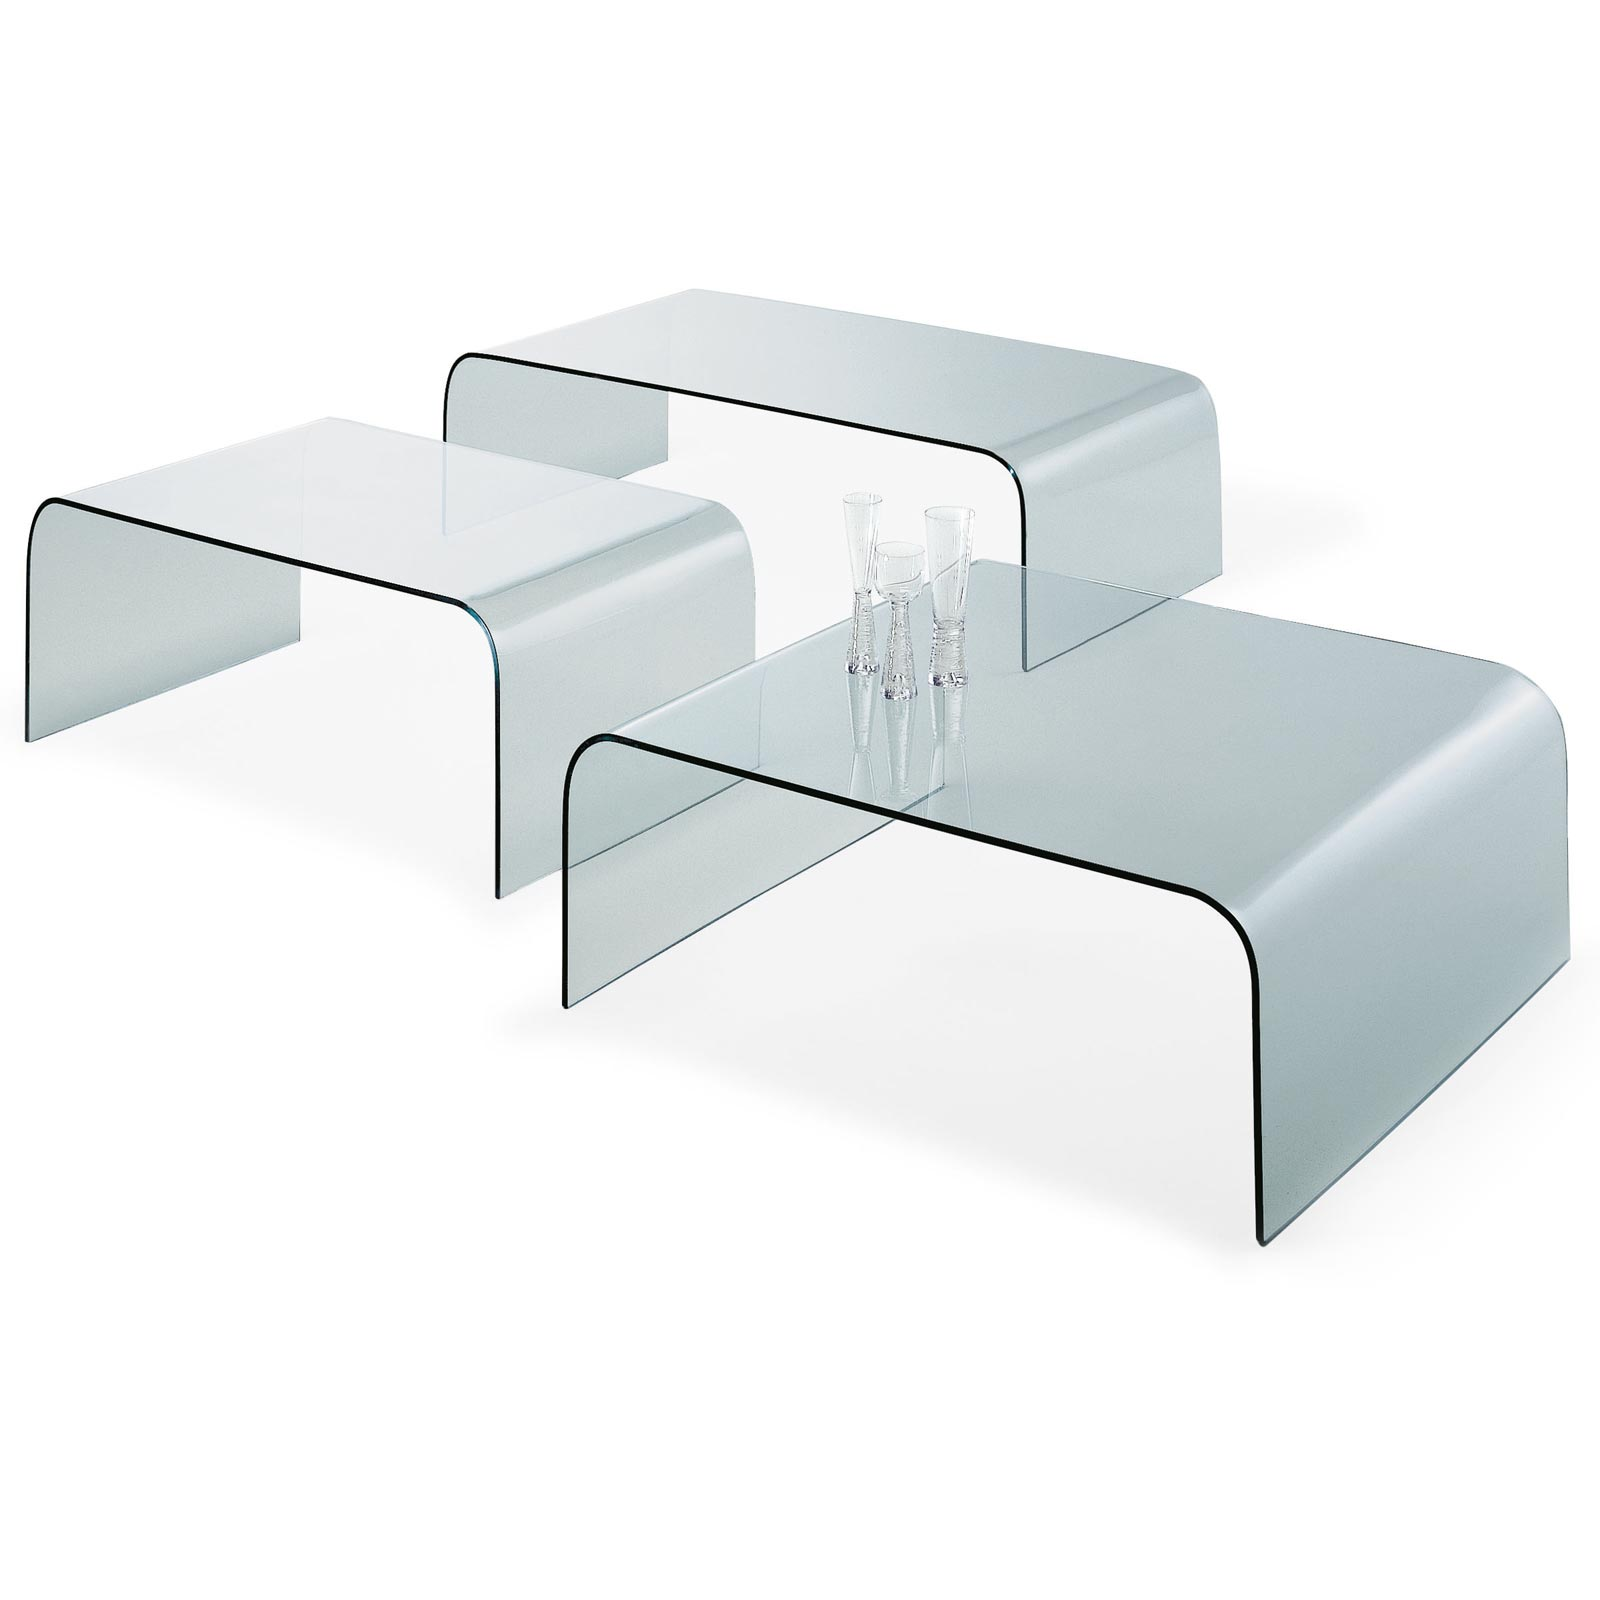 Draenert Couchtisch Coffee Table Nurglas By Draenert